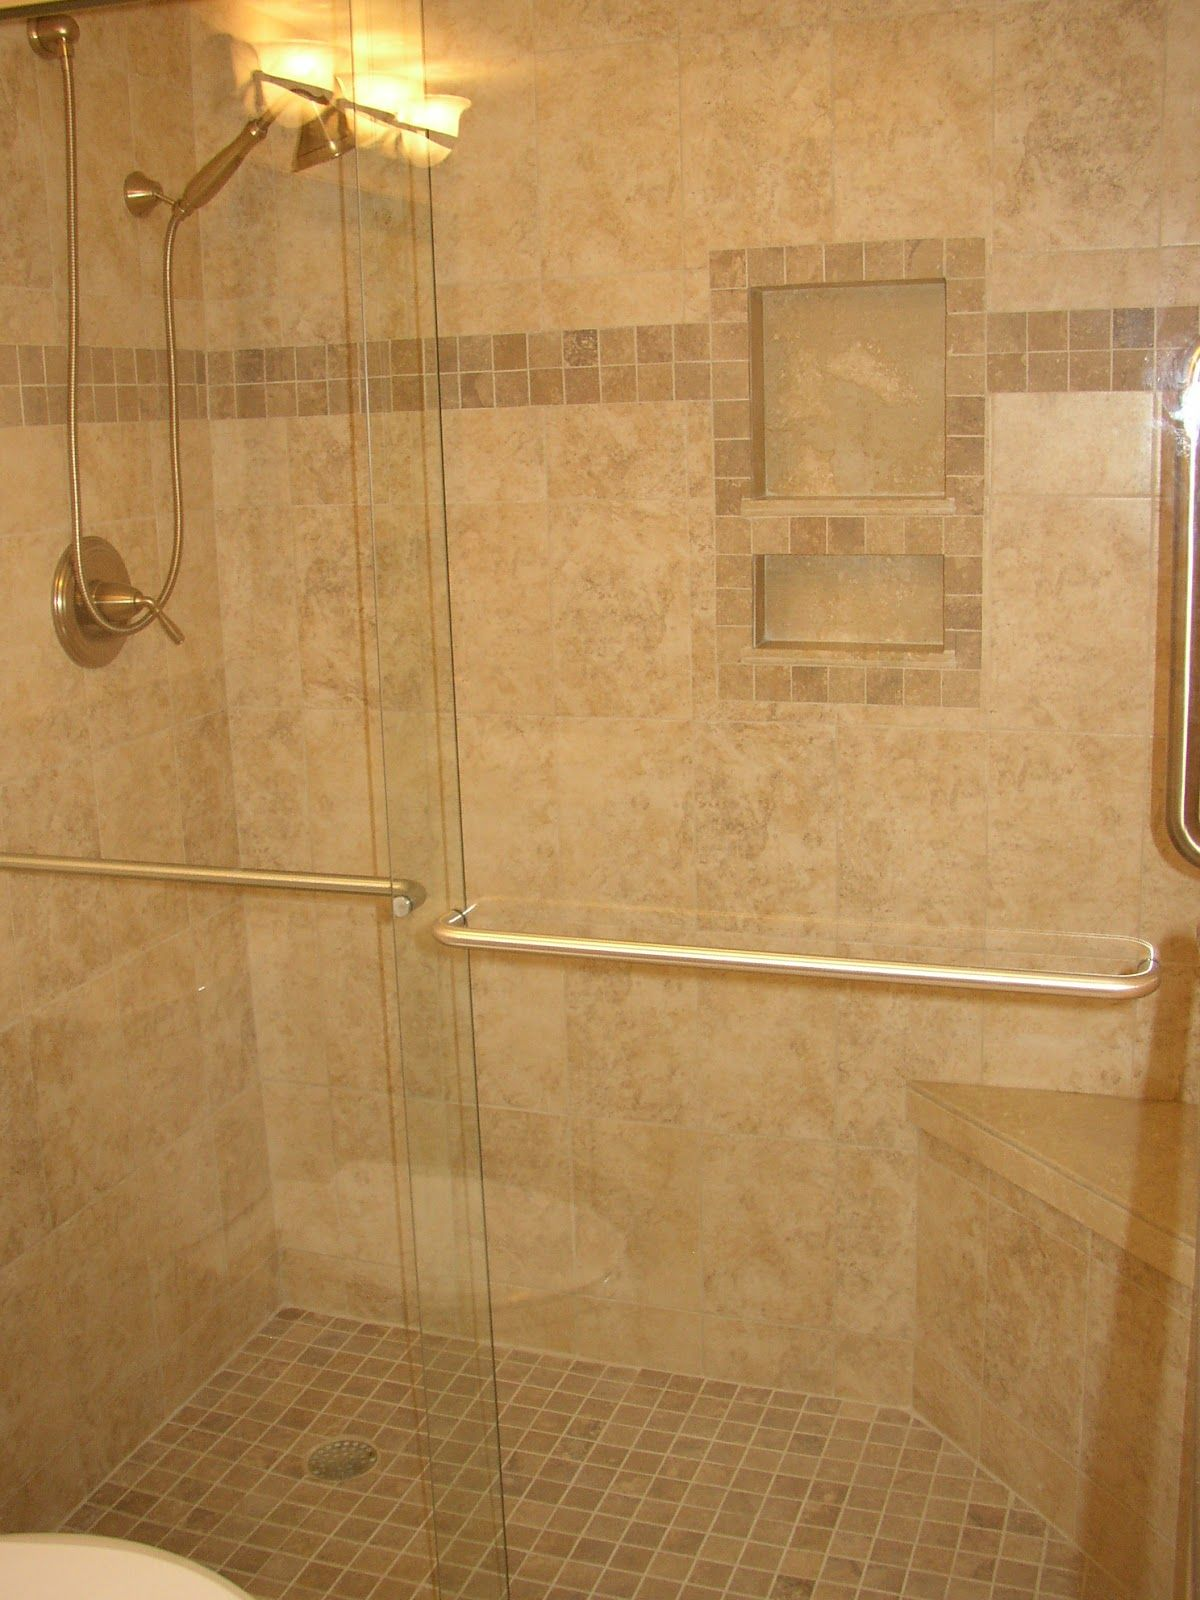 Bathroom tile recessed shower niche installation with tile layout ...